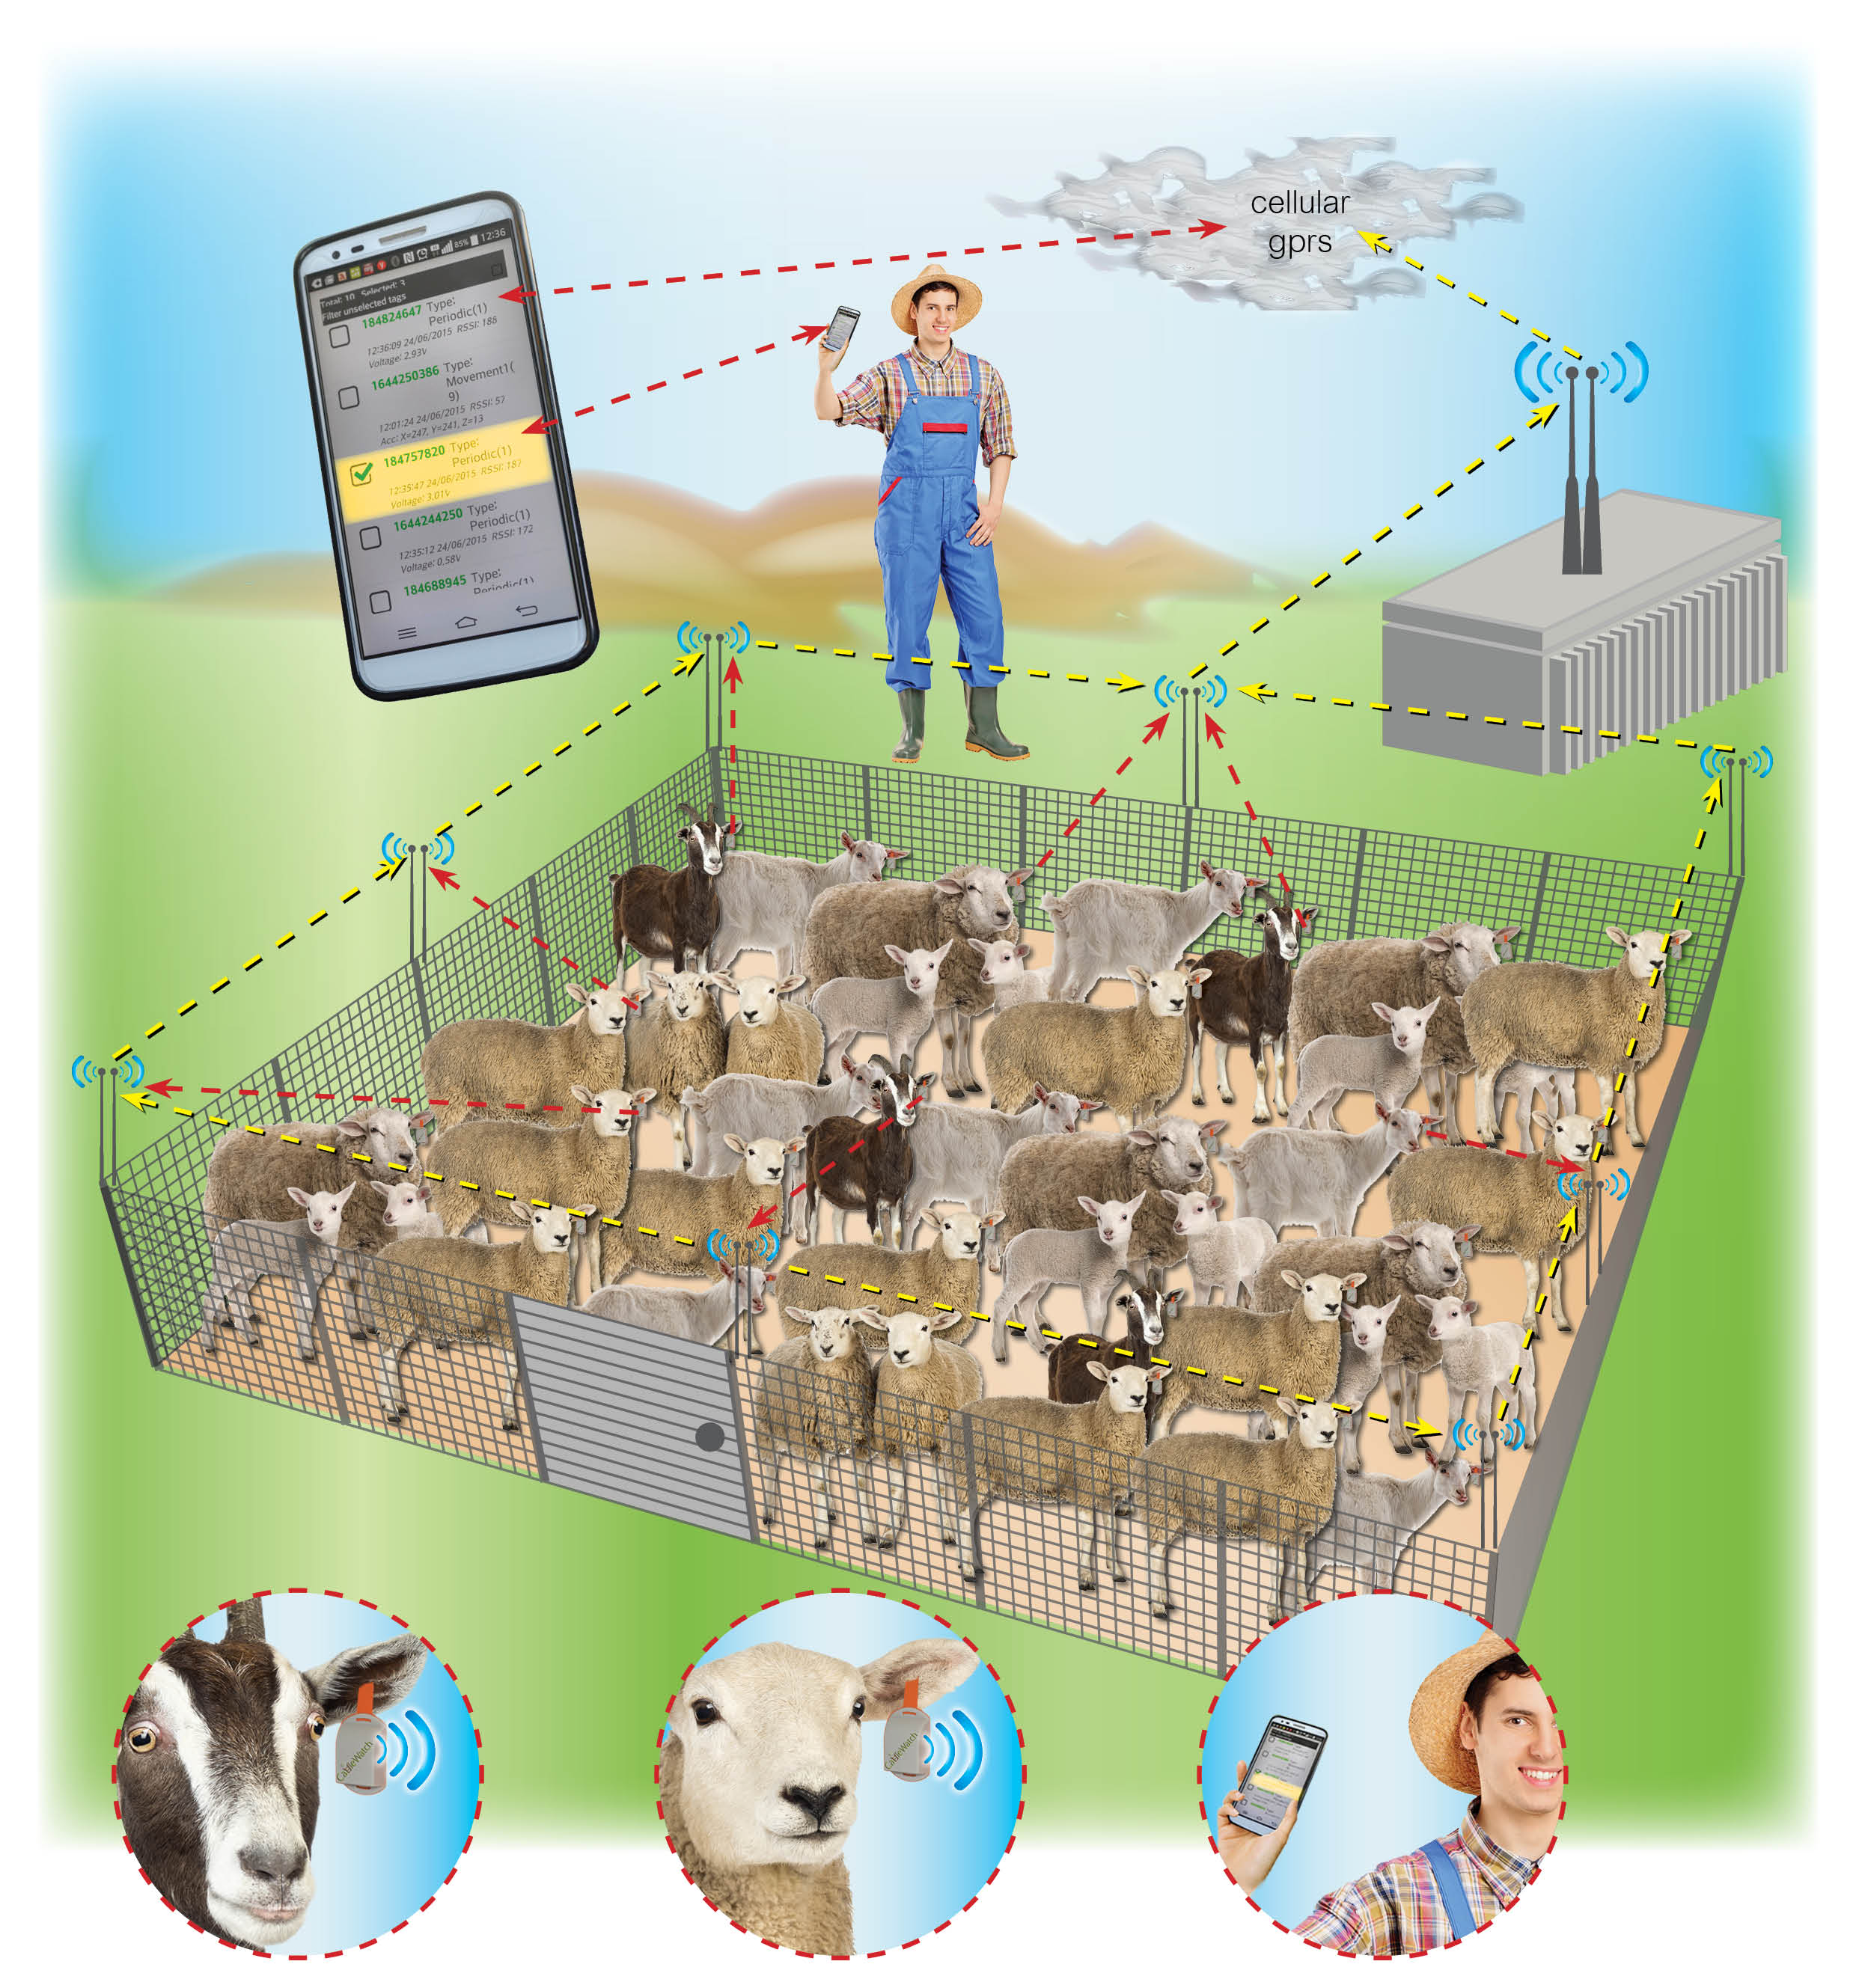 drone gps tracking with 41334 Telefonica Partners With Cattle Watch Providing Iot Connectivity Solutions To The Cattle Industry on 385254 together with 401216 likewise Cd649de24b in addition Gps Tracking For Hazardous Waste Transport additionally Block Diagram Gps Agriculture Wiring Diagrams.